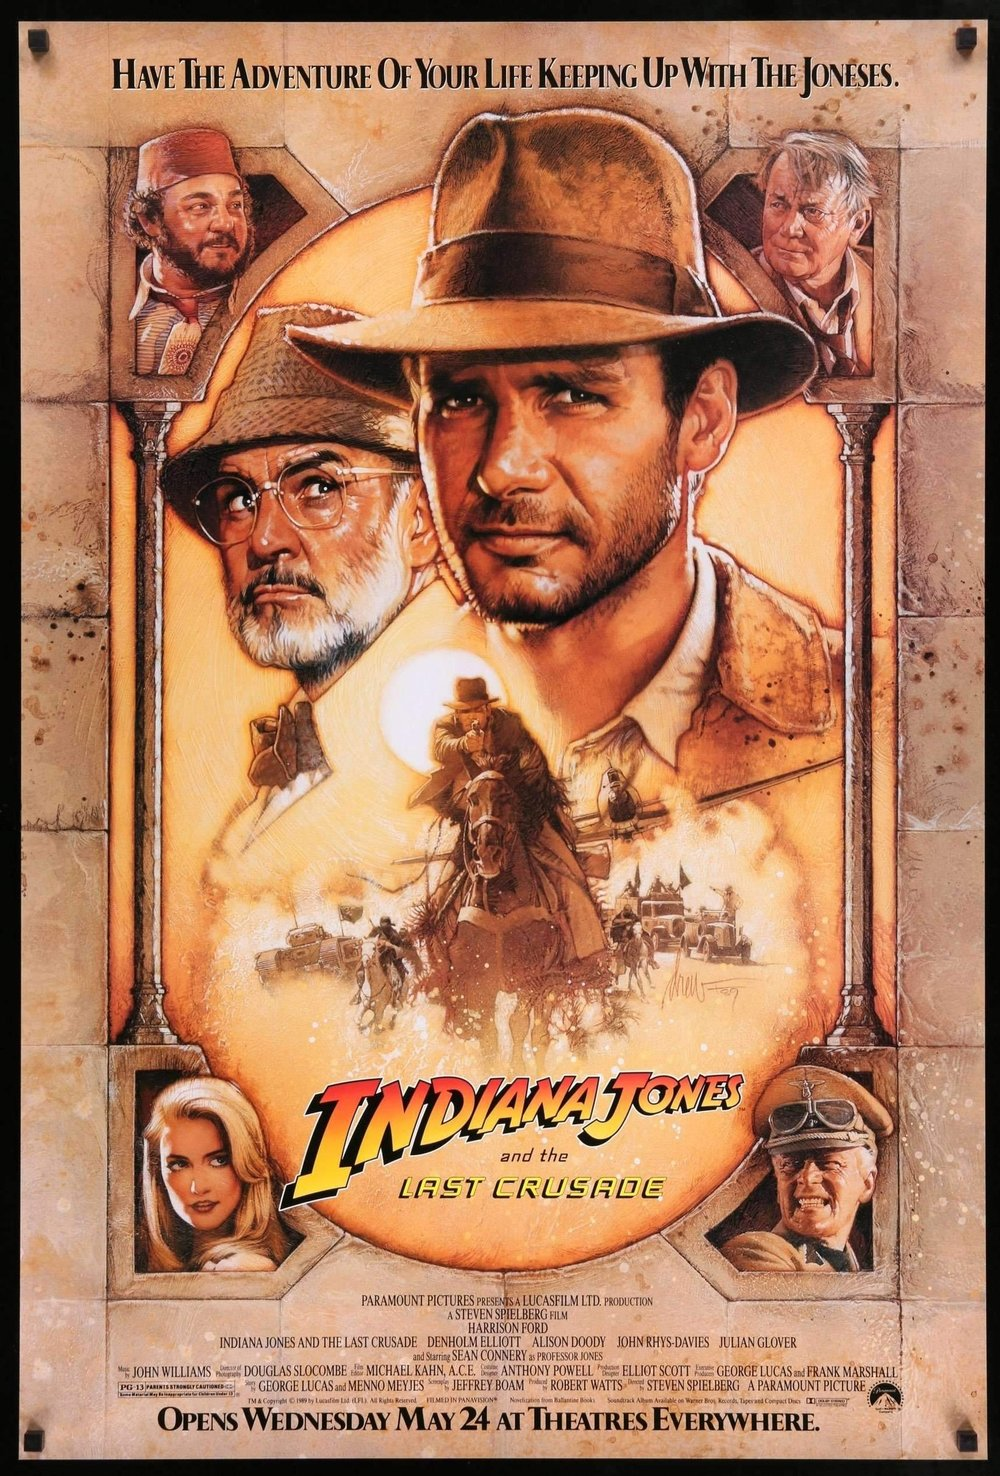 Indiana Jones and The Last Crusade (1989) - Directed by: Steven SpielbergStarring: Harrison Ford, Sean Connery, Allison DoodyRated: PG-13Running Time: 2 h 7 mTMM Score: 4.5 stars out of 5STRENGTHS: Pacing, Directing, Character Chemistry, MusicWEAKNESSES: Plausibility (?)